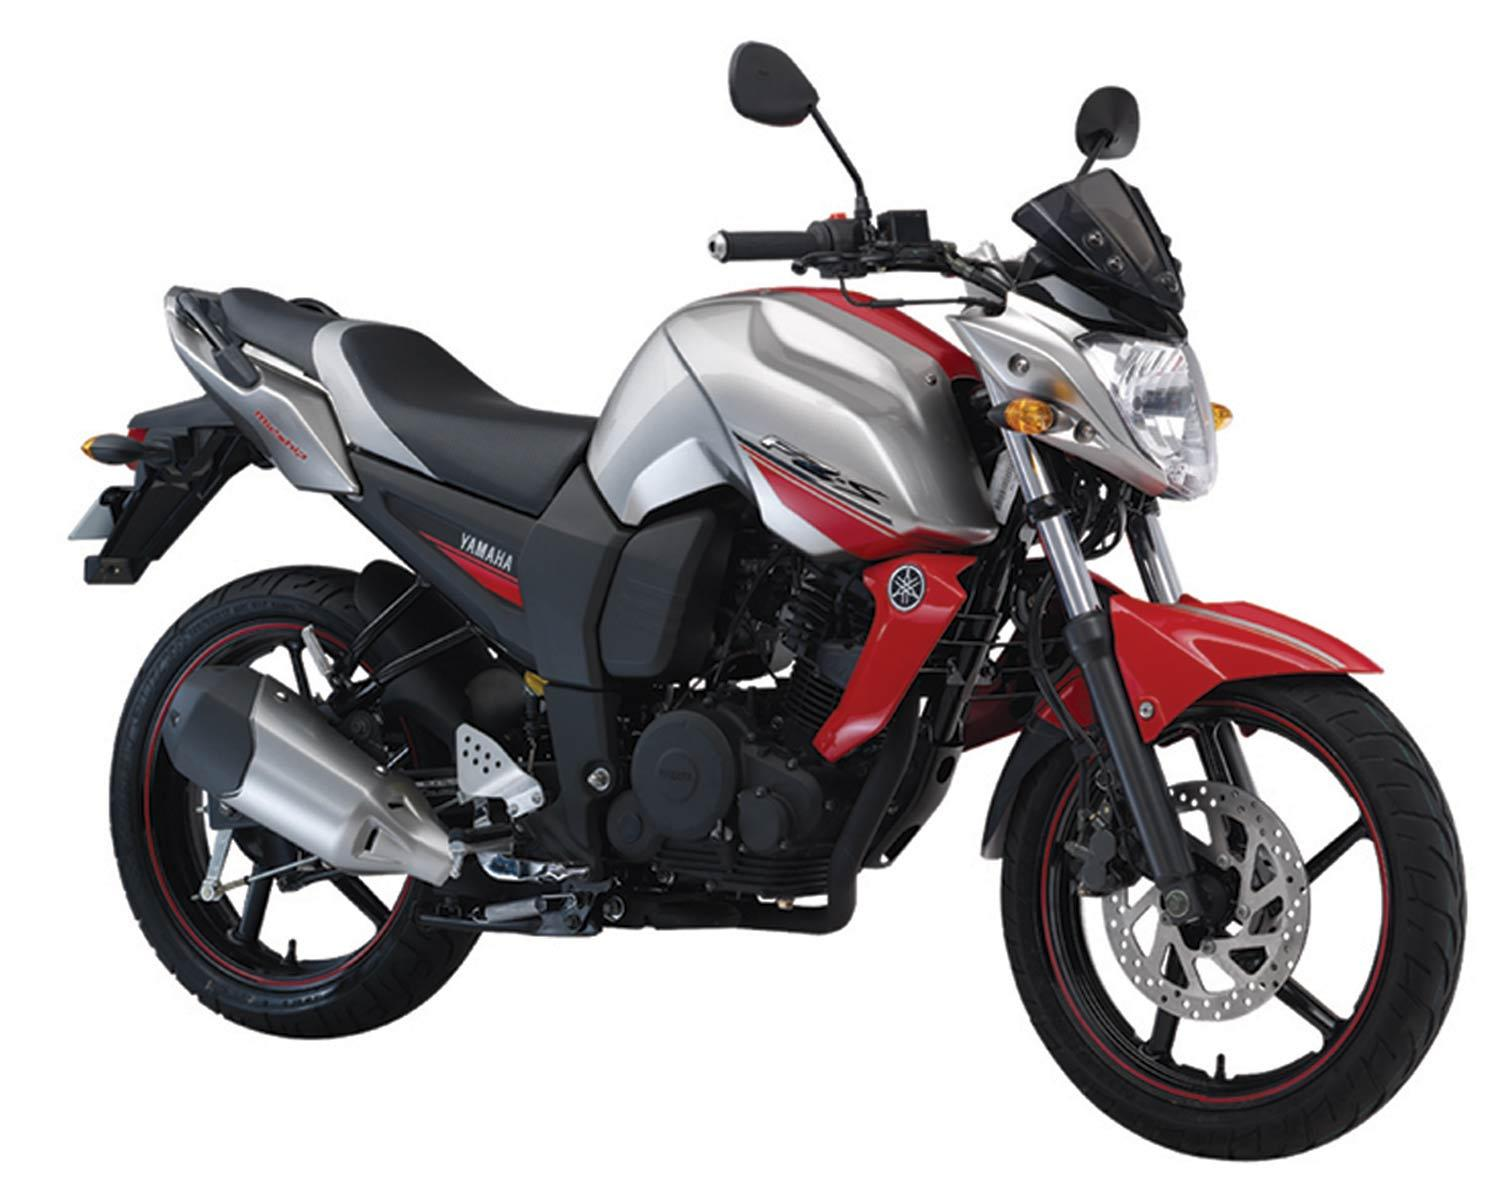 Yamaha Motor sales rise 20% in India